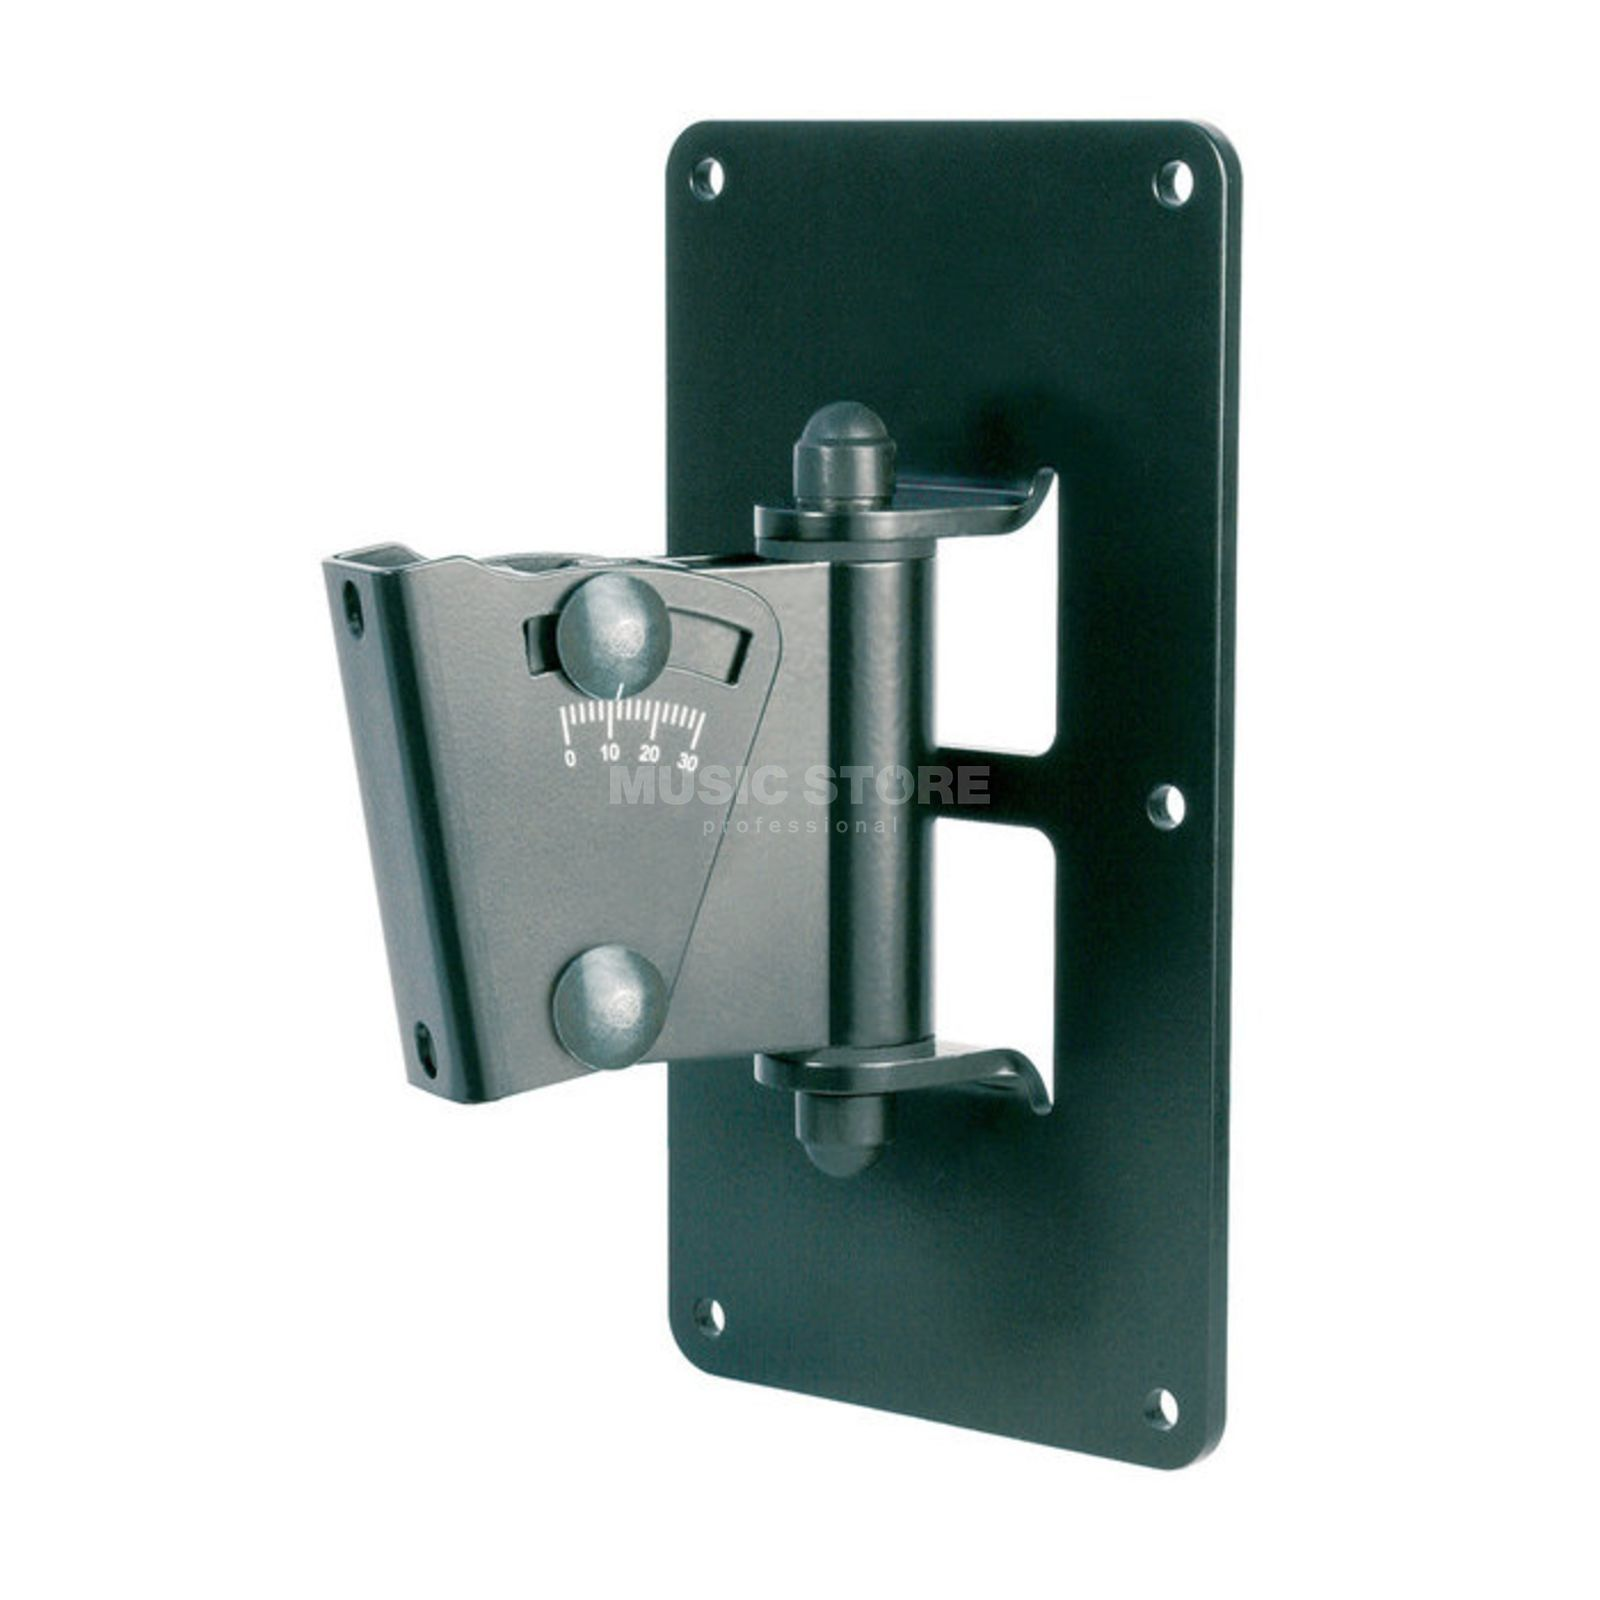 König & Meyer 24481 Speakers Wall Mount Black Produktbillede